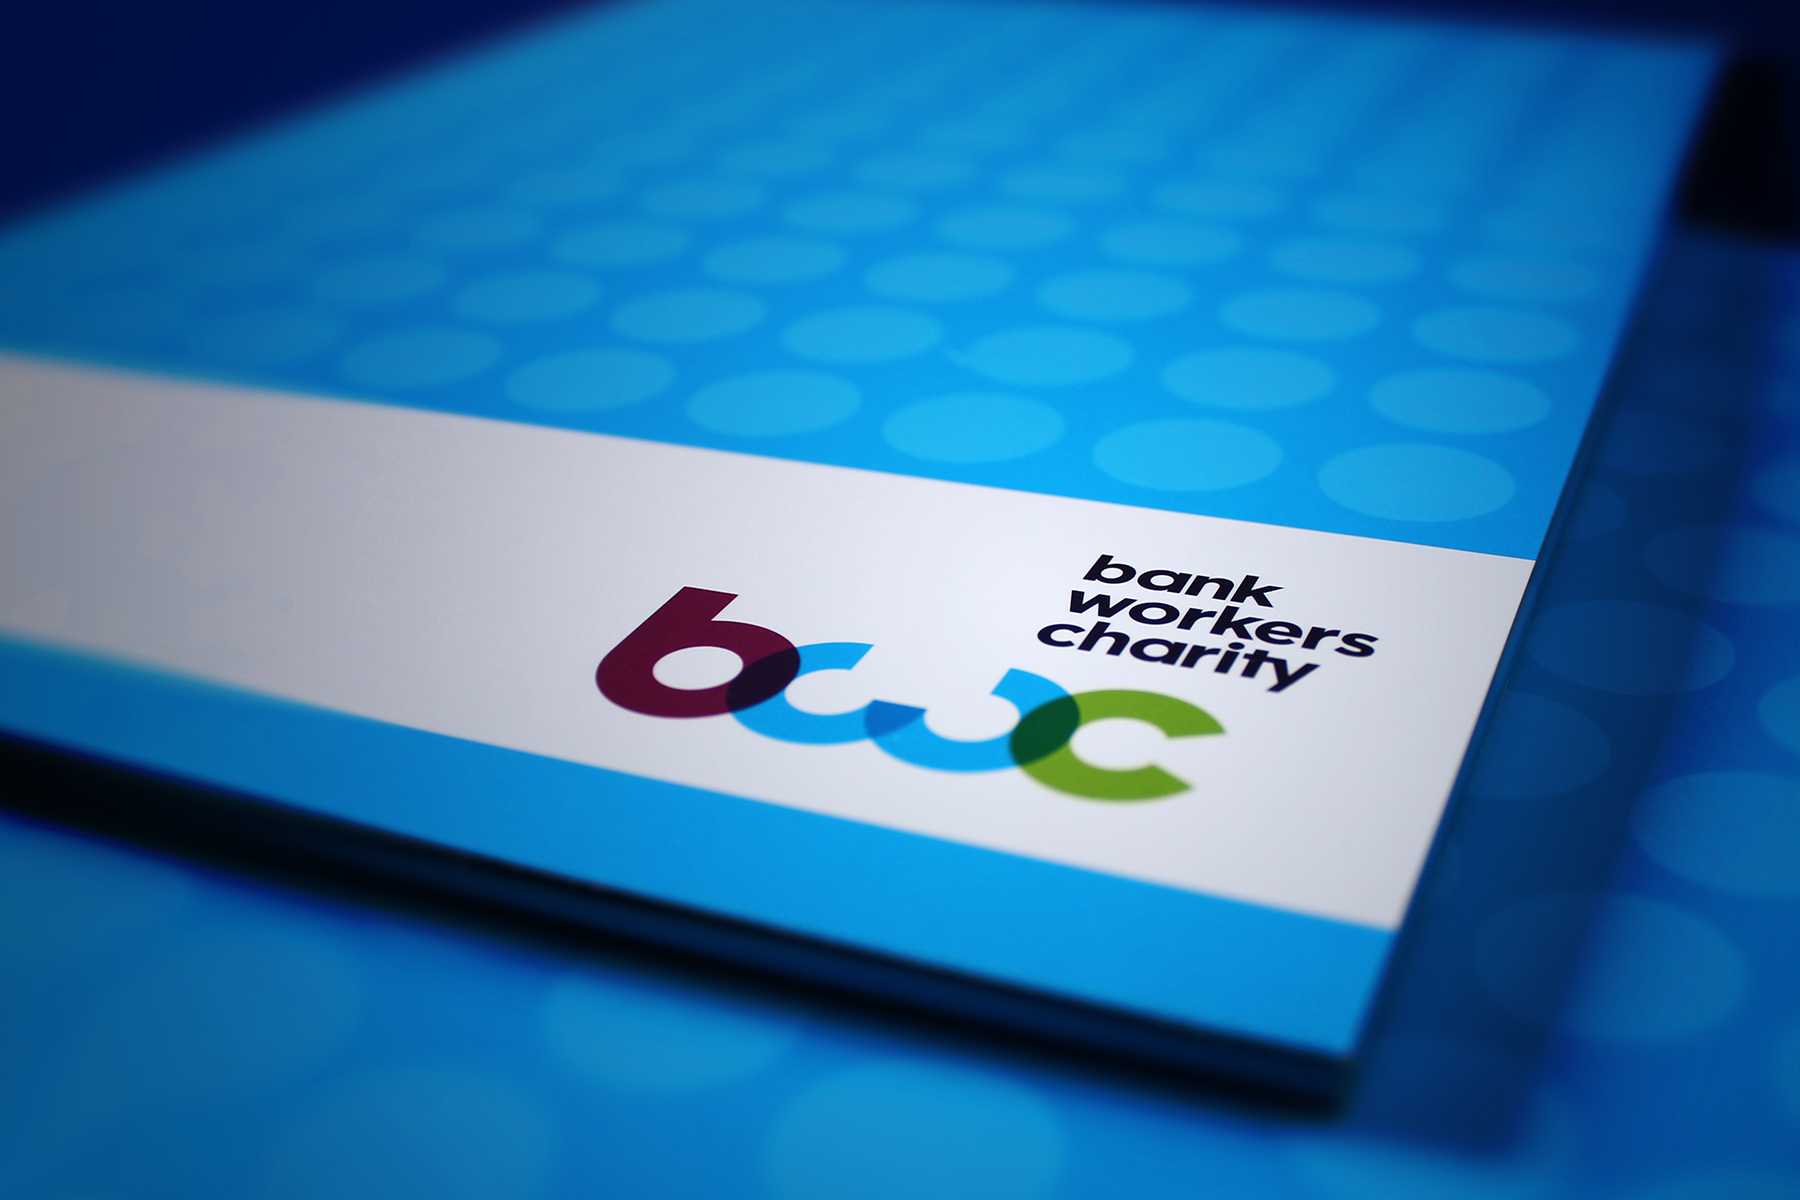 After changing the business name, BWC approached Firedog to create a fresh contemporary identity